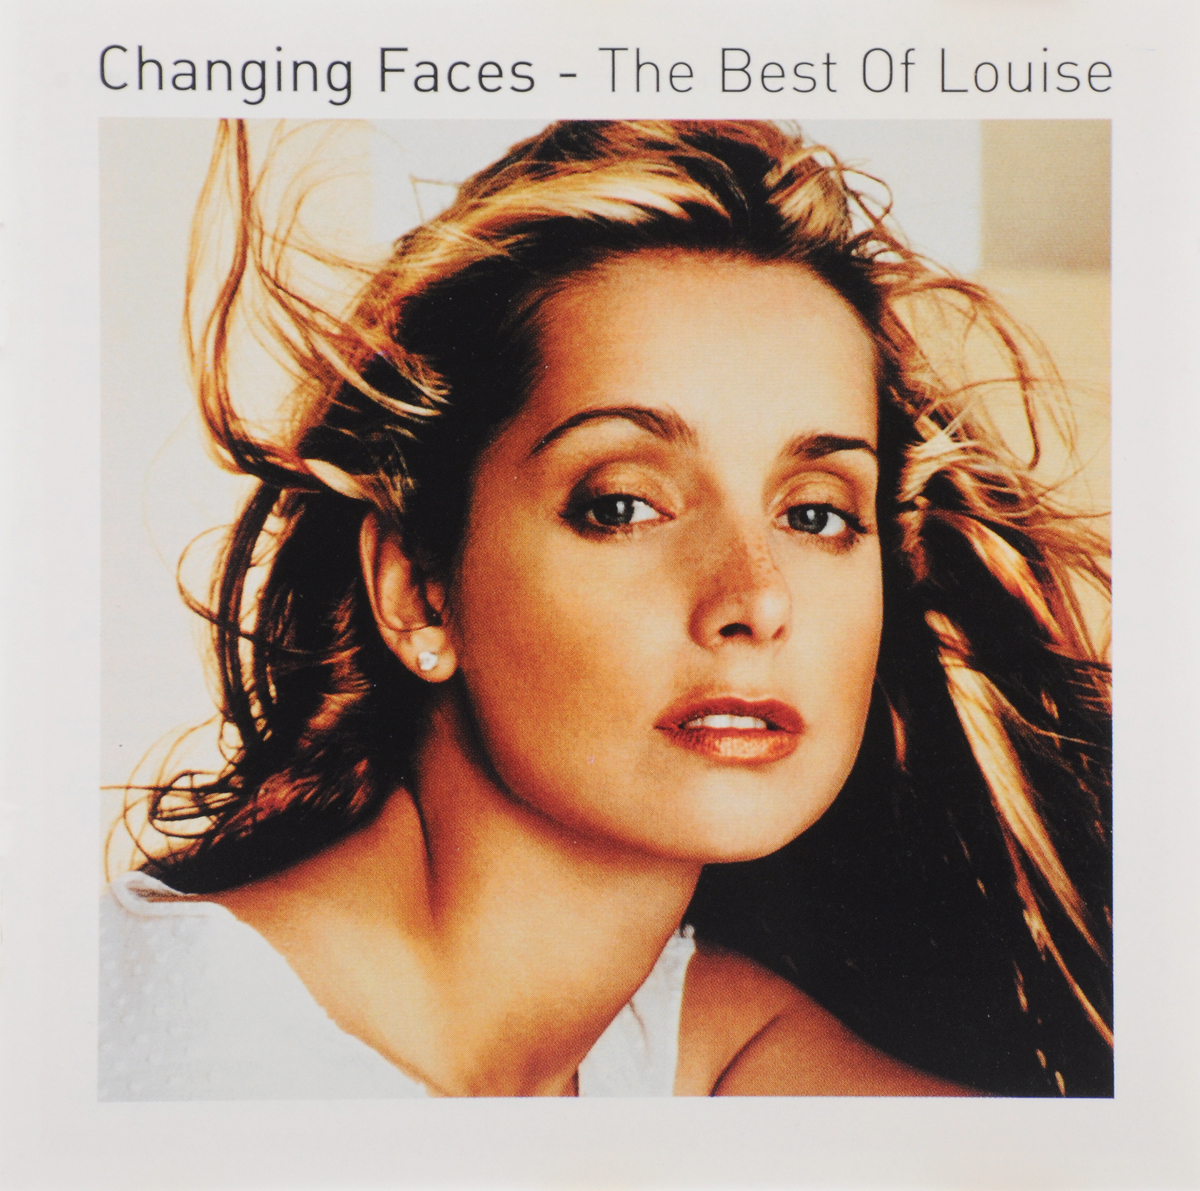 Louise. Changing Faces, Best Of Louise faces faces first step